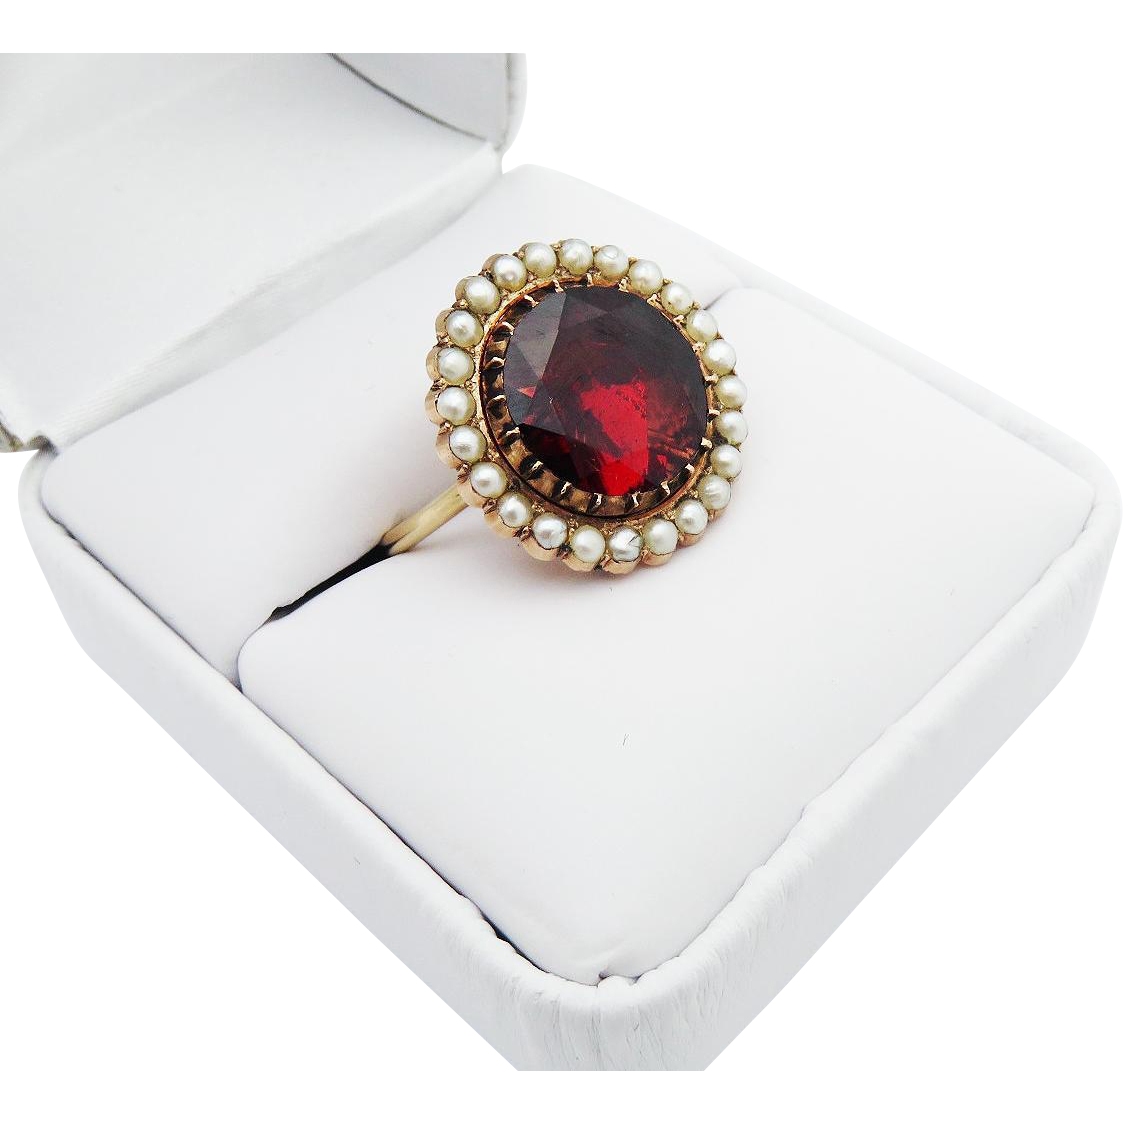 INCREDIBLY PRISTINE Stately 6.19 Ct. Georgian Garnet/Seed Pearl/15k Ring, c.1805!